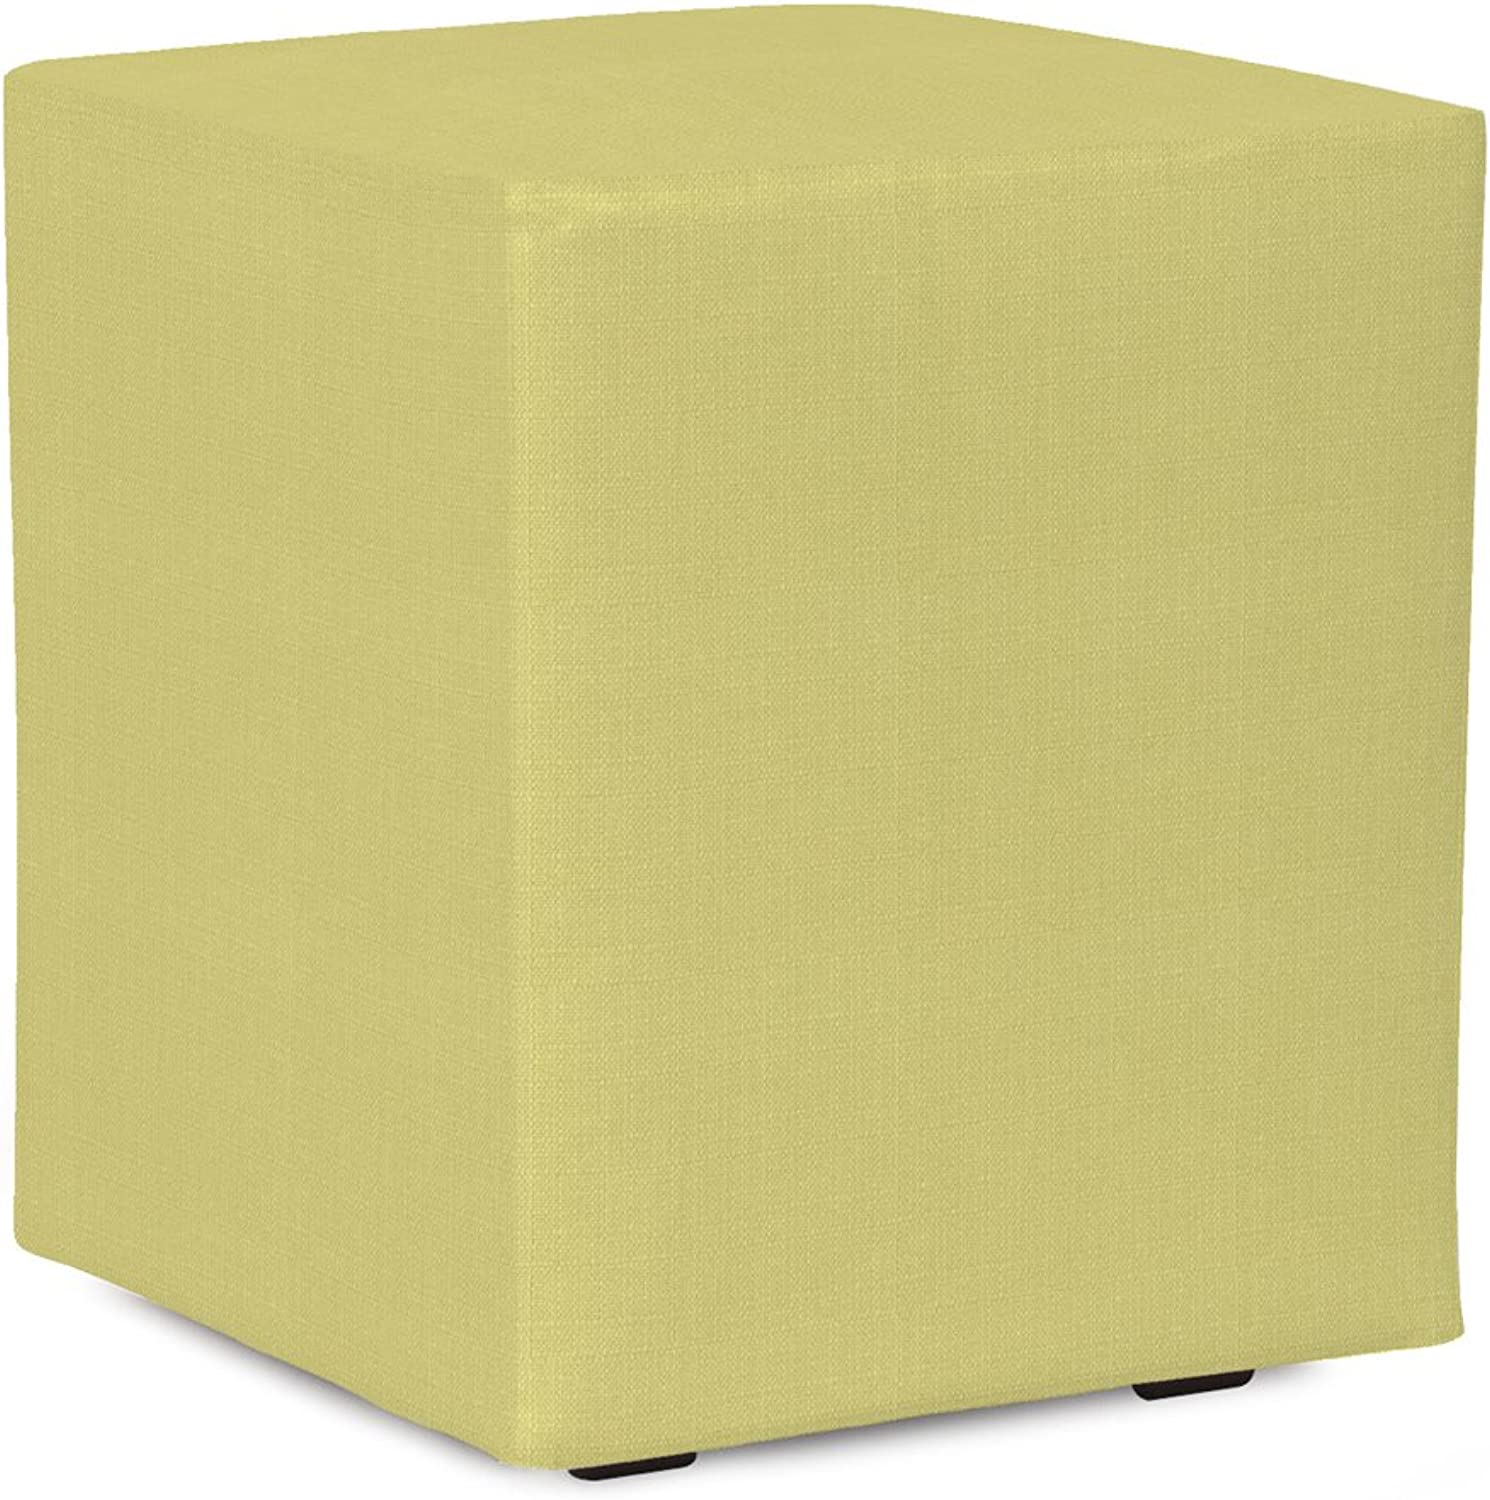 Howard Elliott Collection C128-204 Sterling Universal Cube Cover, Willow